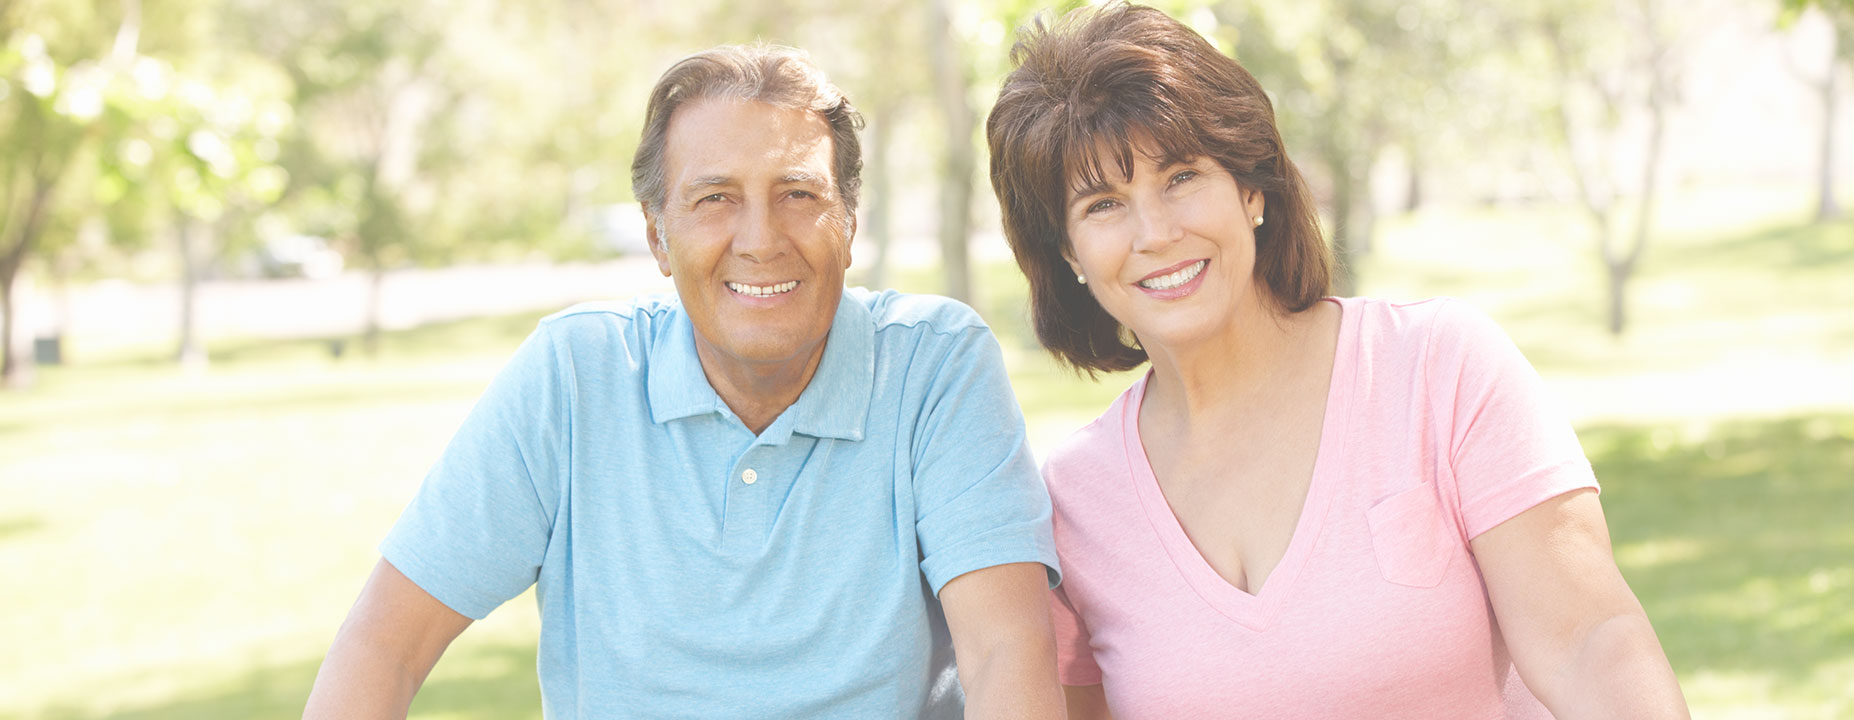 Happy middle age couple